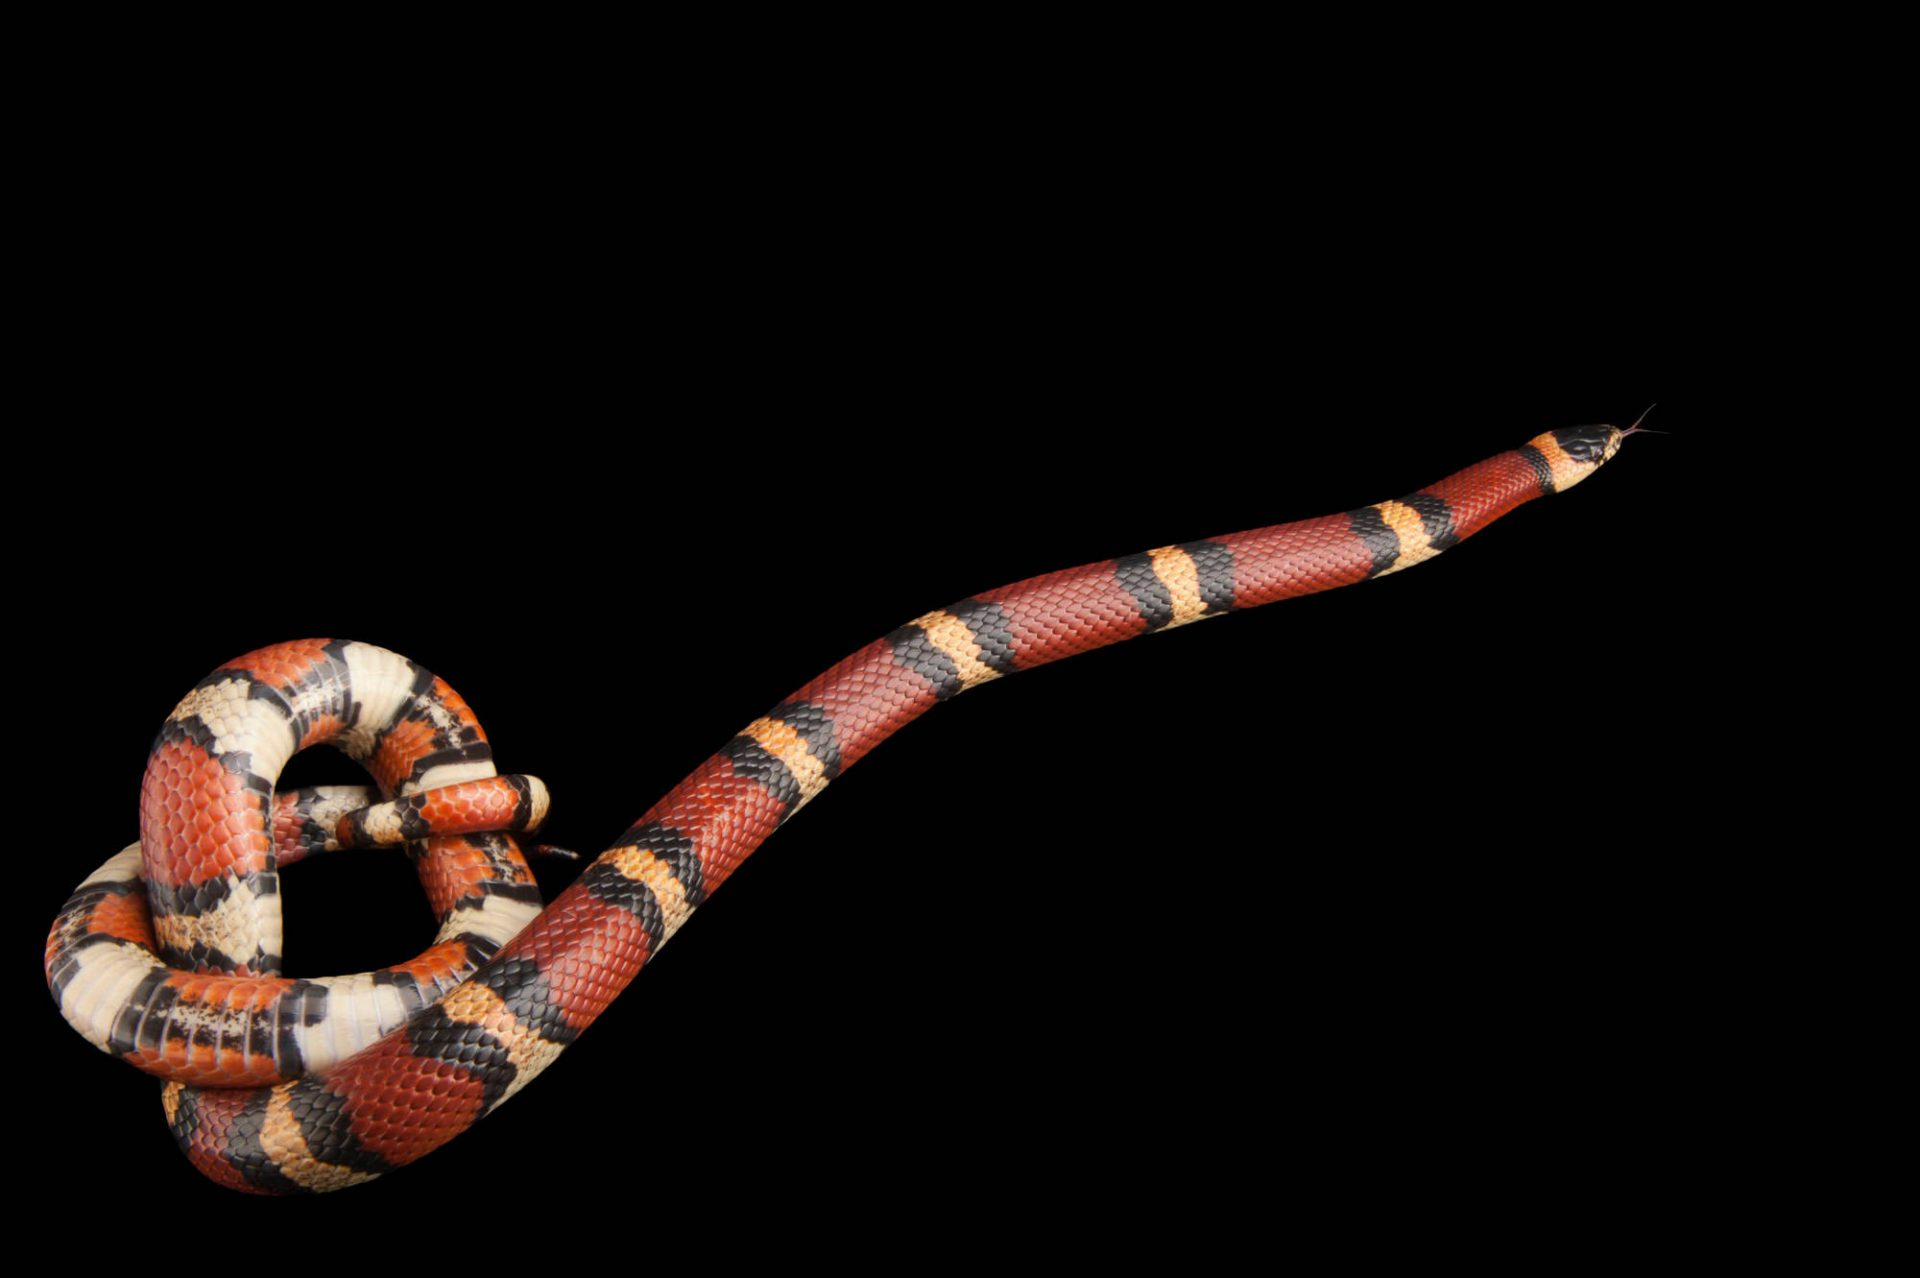 A Louisiana milk snake (Lampropeltis triangulum amaura) at the Houston Zoo.